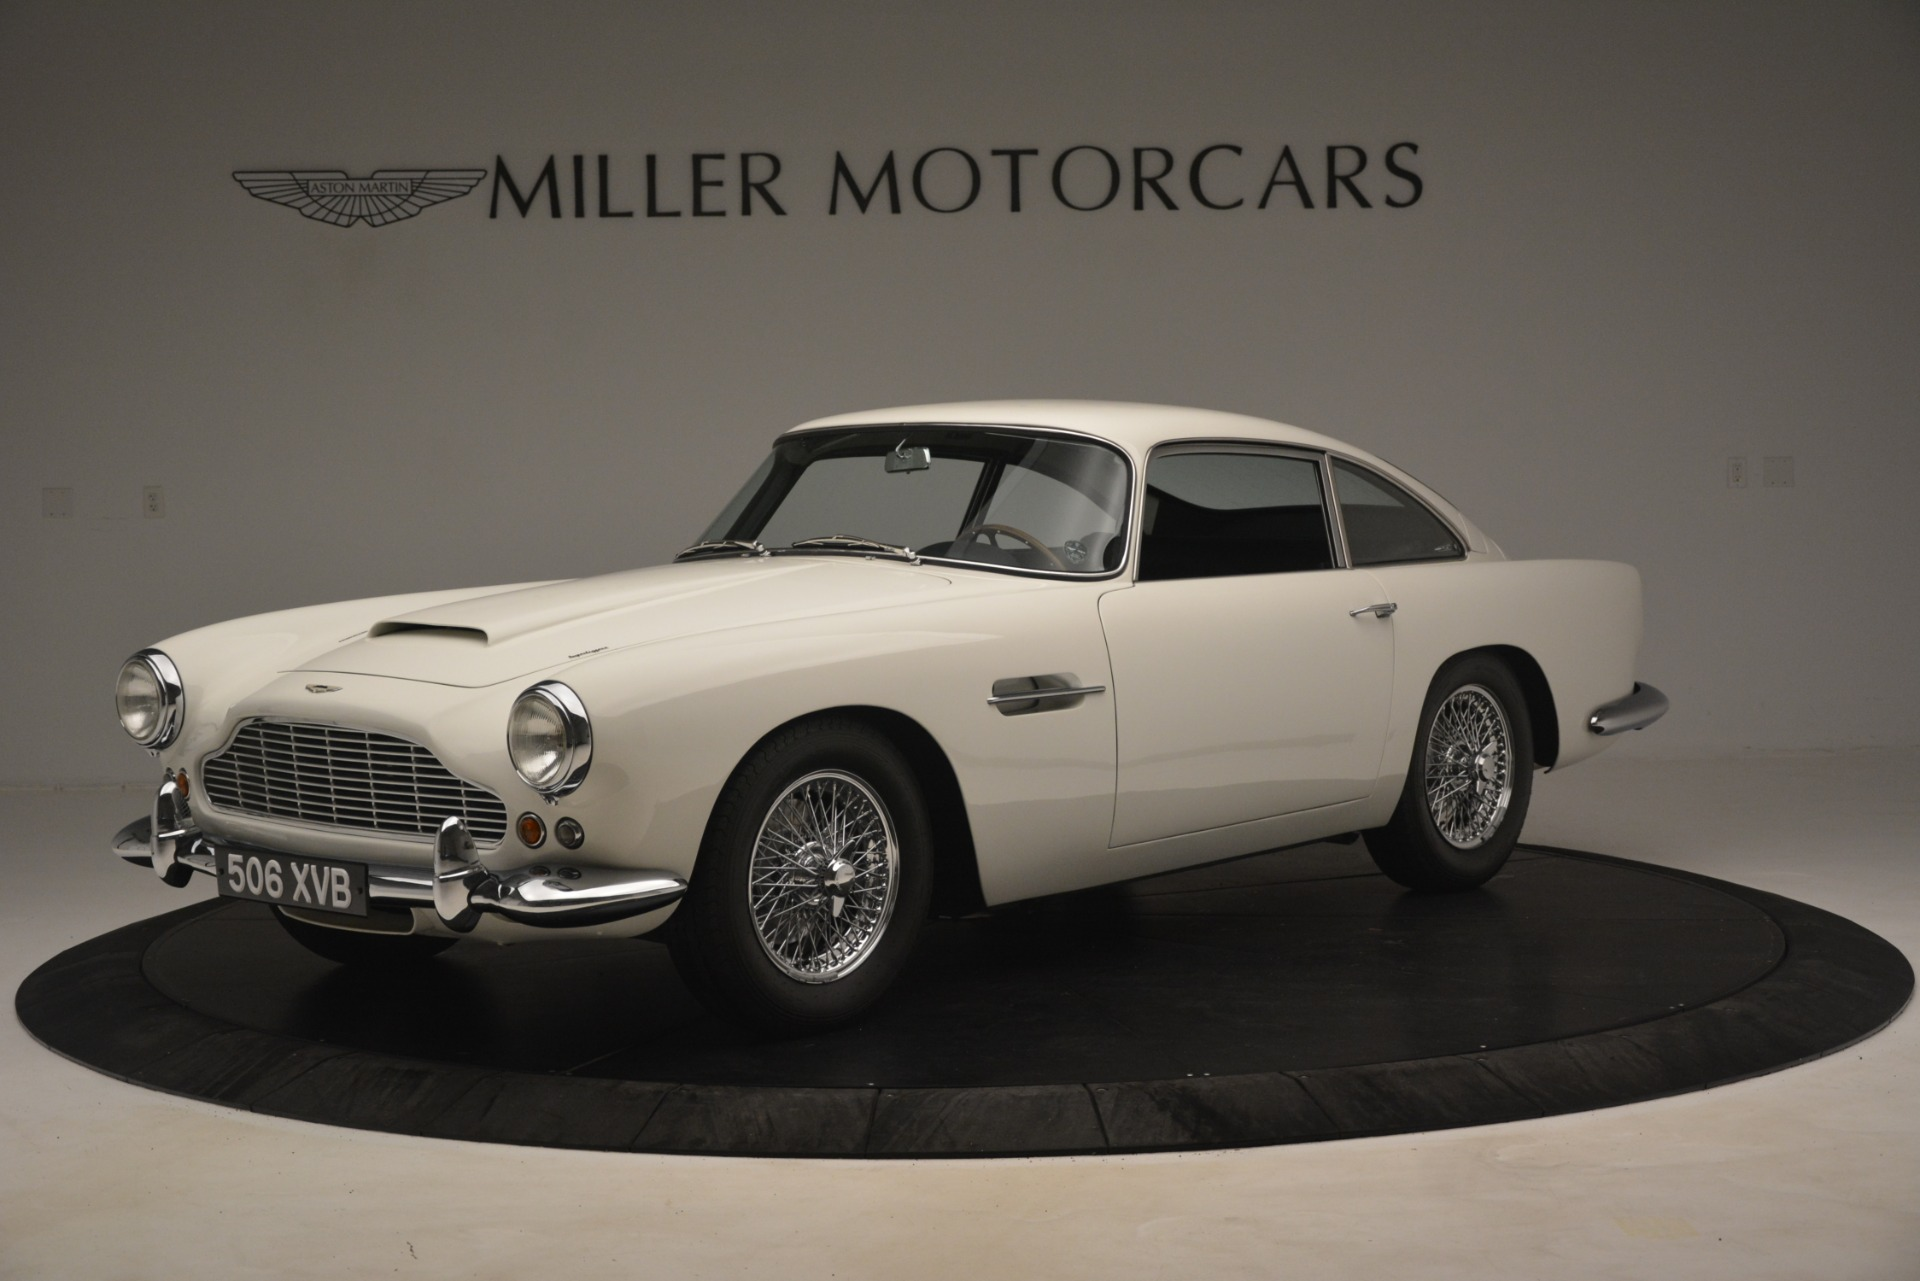 Used 1961 Aston Martin DB4 Series IV Coupe for sale $599,900 at Pagani of Greenwich in Greenwich CT 06830 1